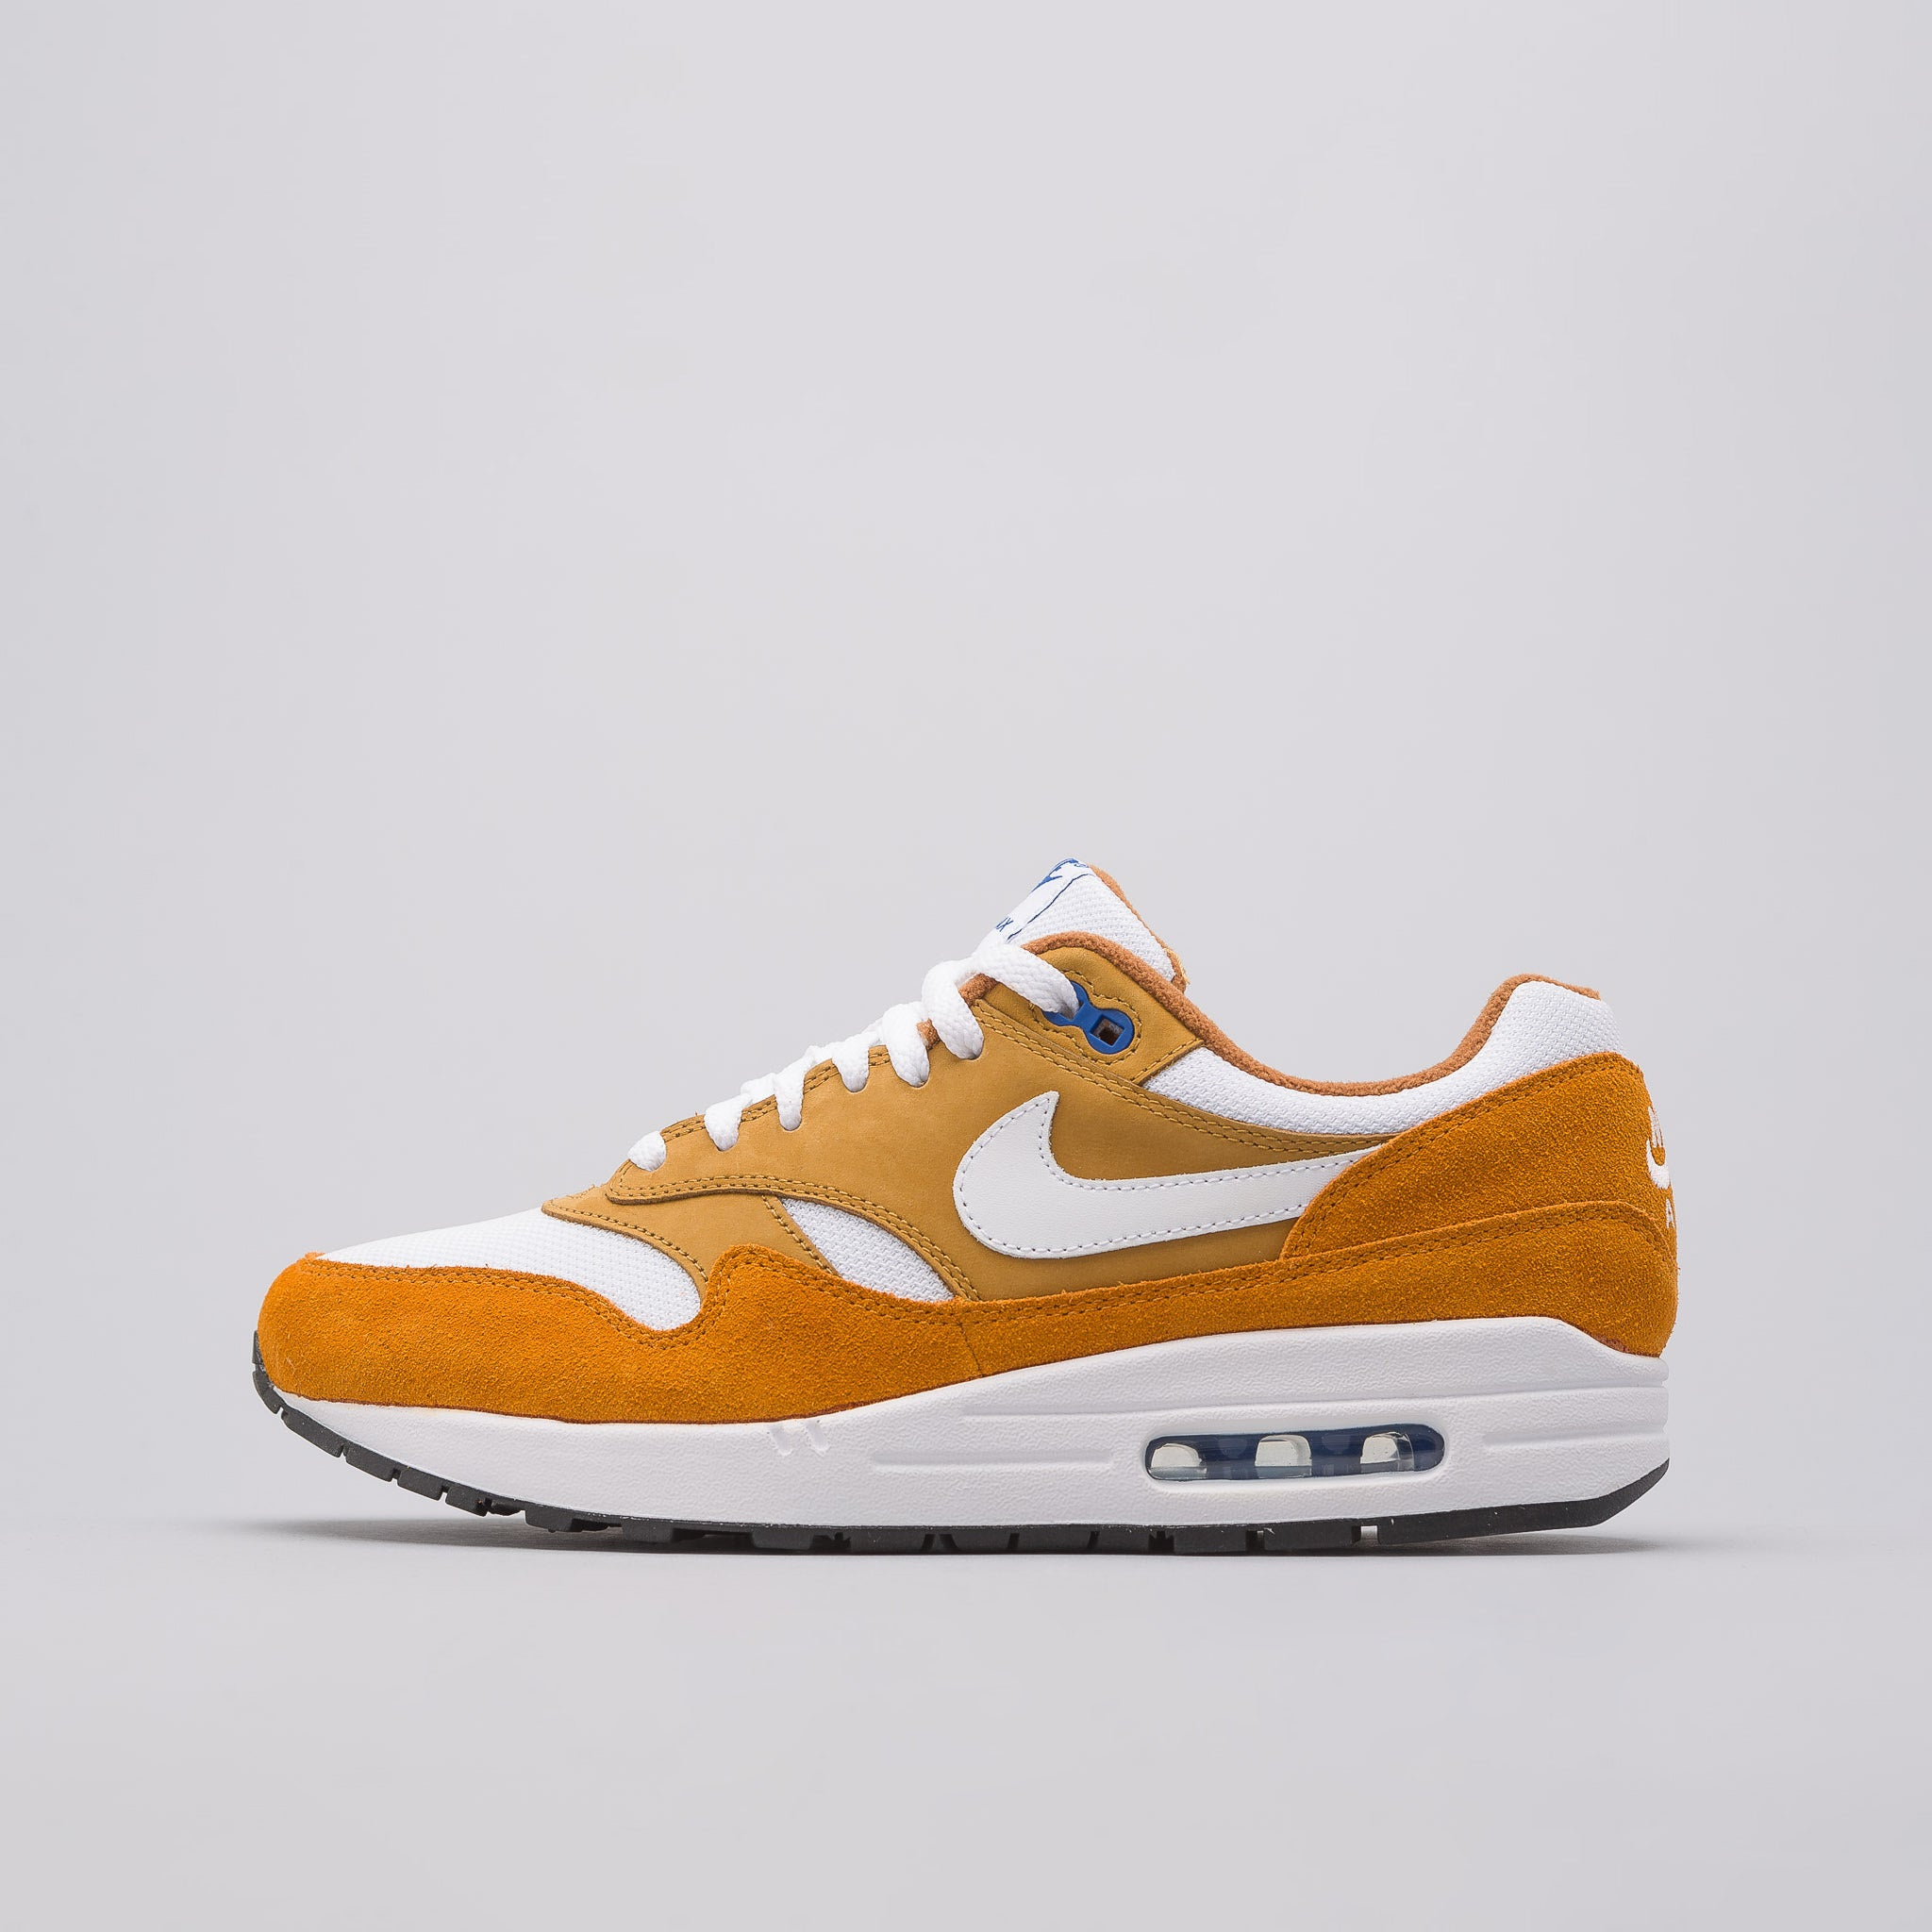 Nike x Atmos Air Max 1 Premium Retro Dark Curry Mens Sizes